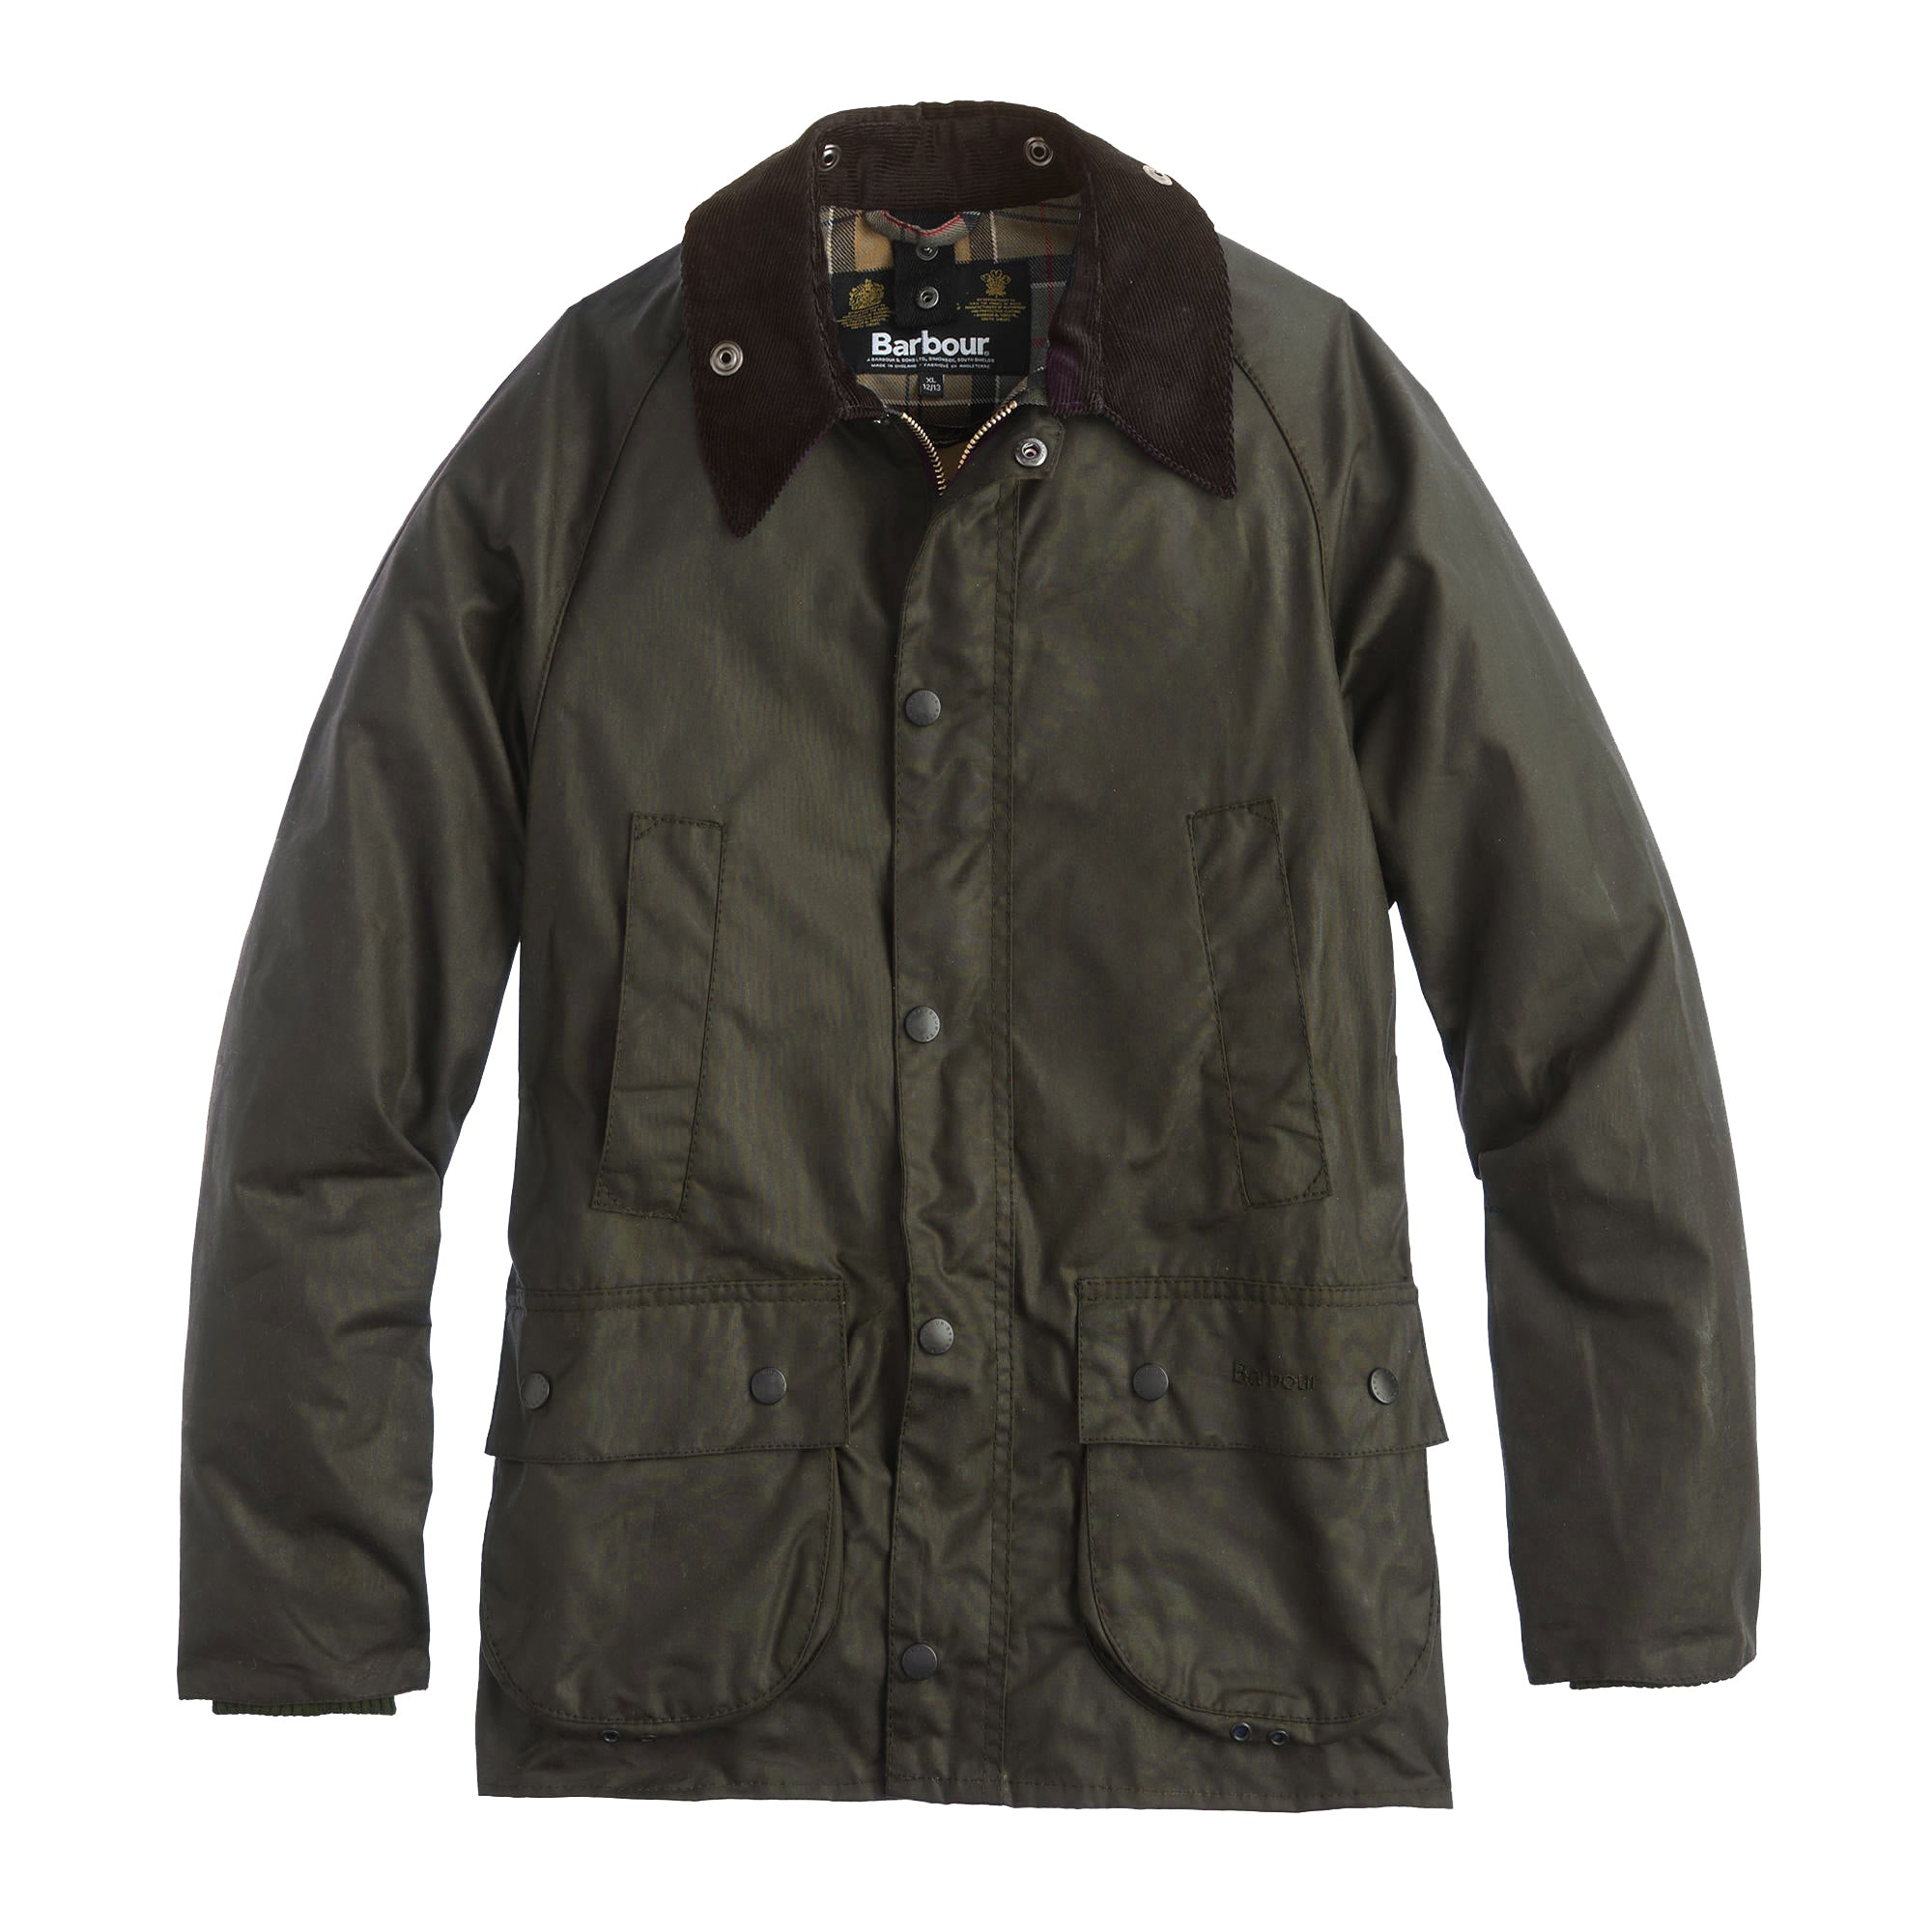 e5716b03f7d7 Childrens bedale waxed jacket - OLIVE - CWX0019 DONE.jpg v 1527191015